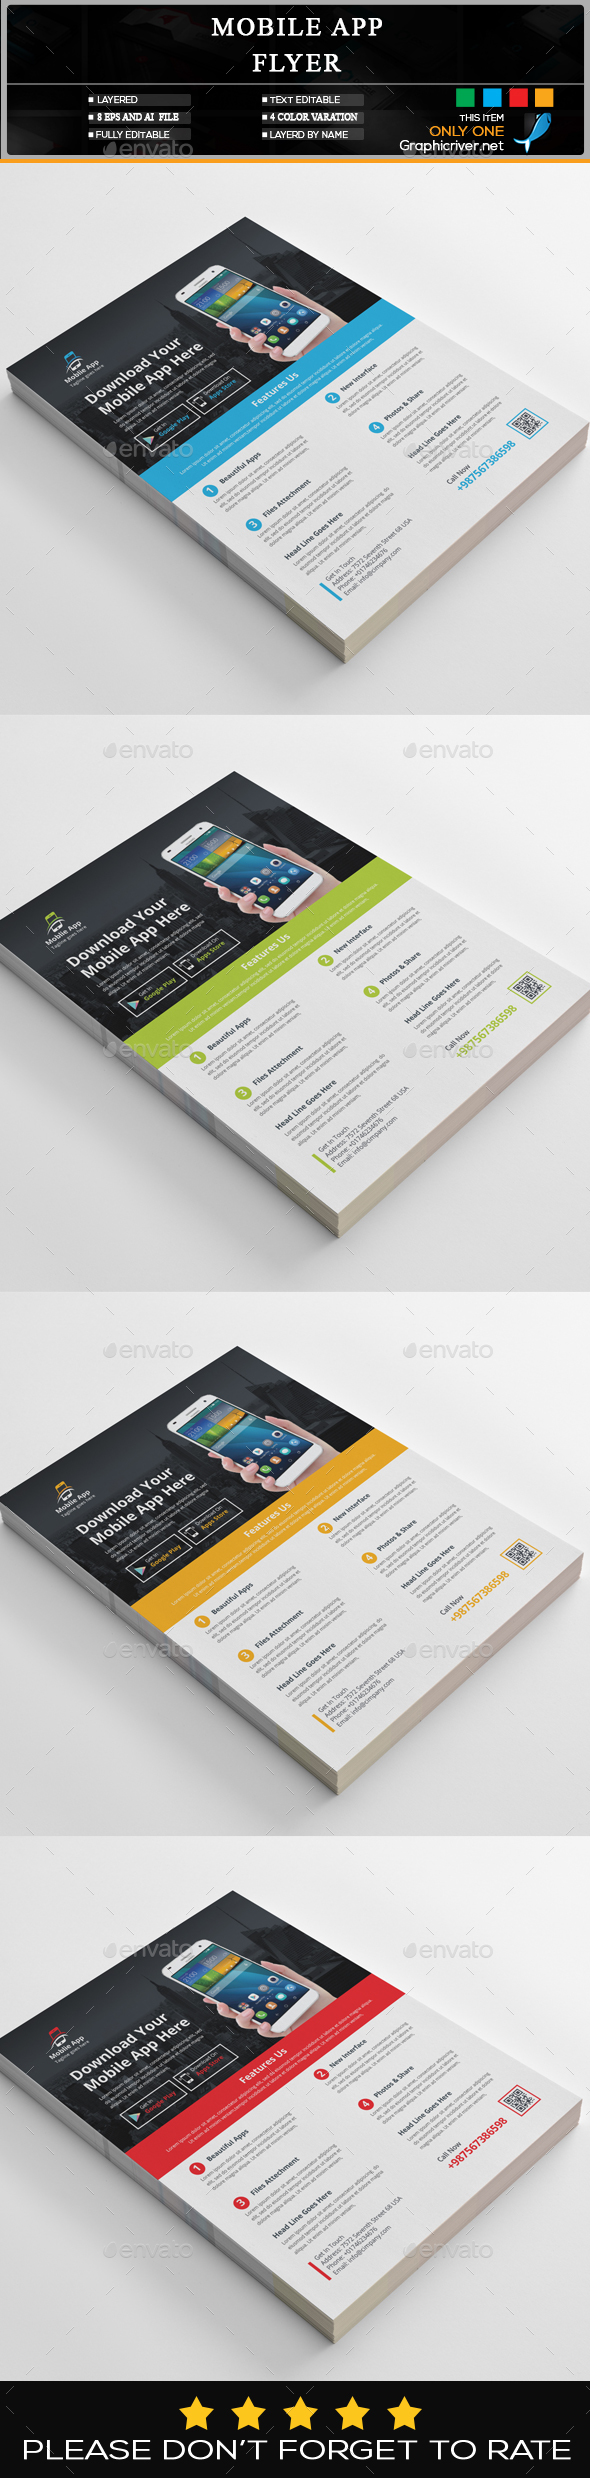 GraphicRiver Mobile App Flyer 20435472